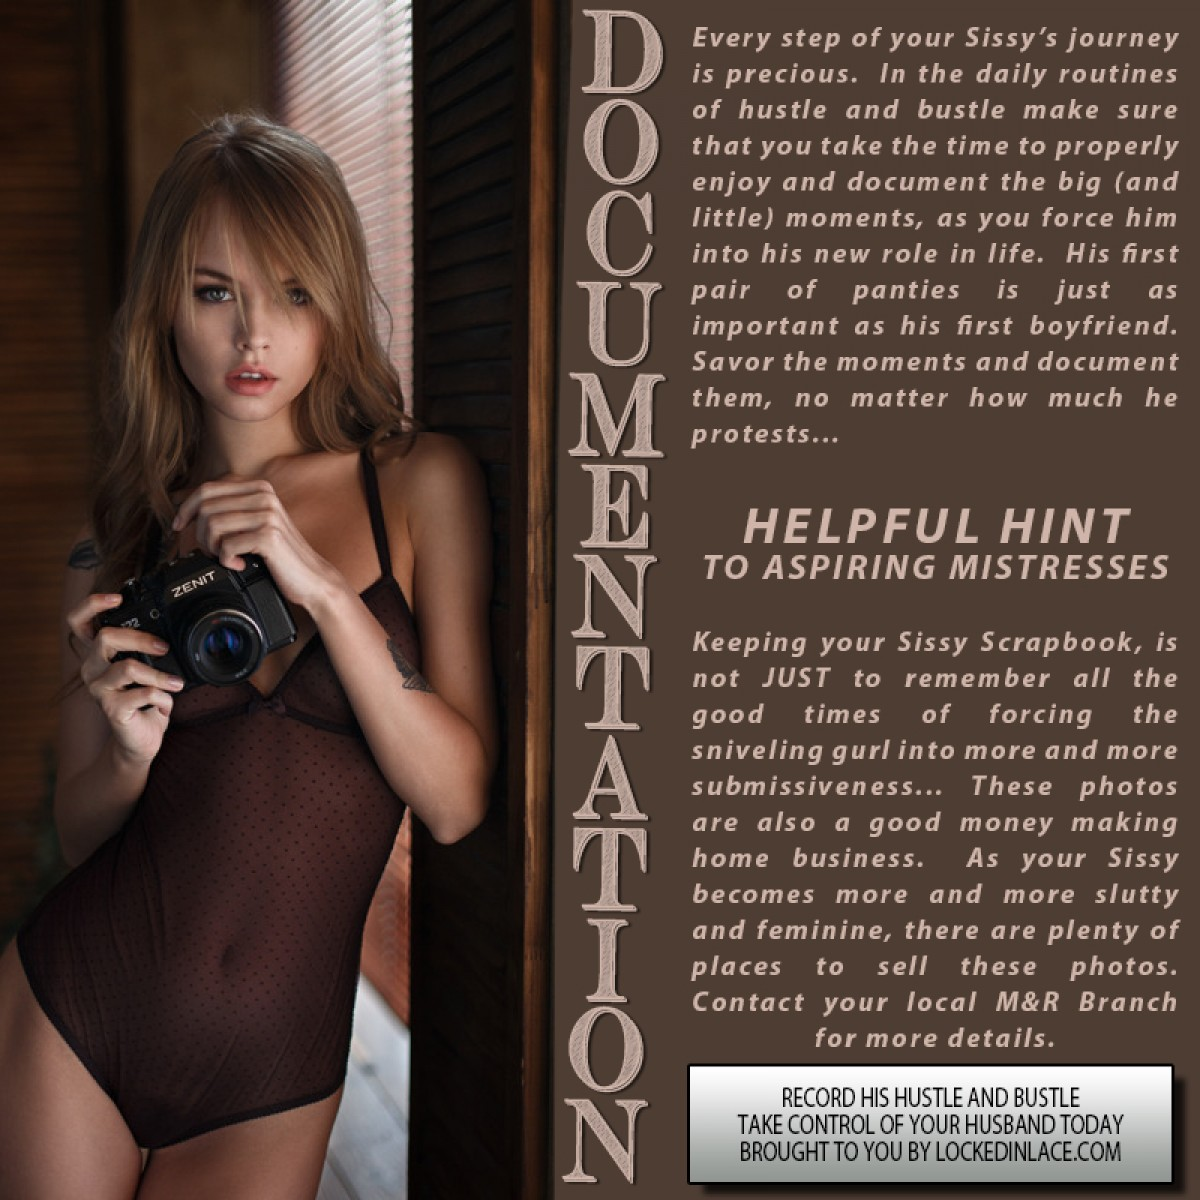 Documentation - Record his Hustle and Bustle